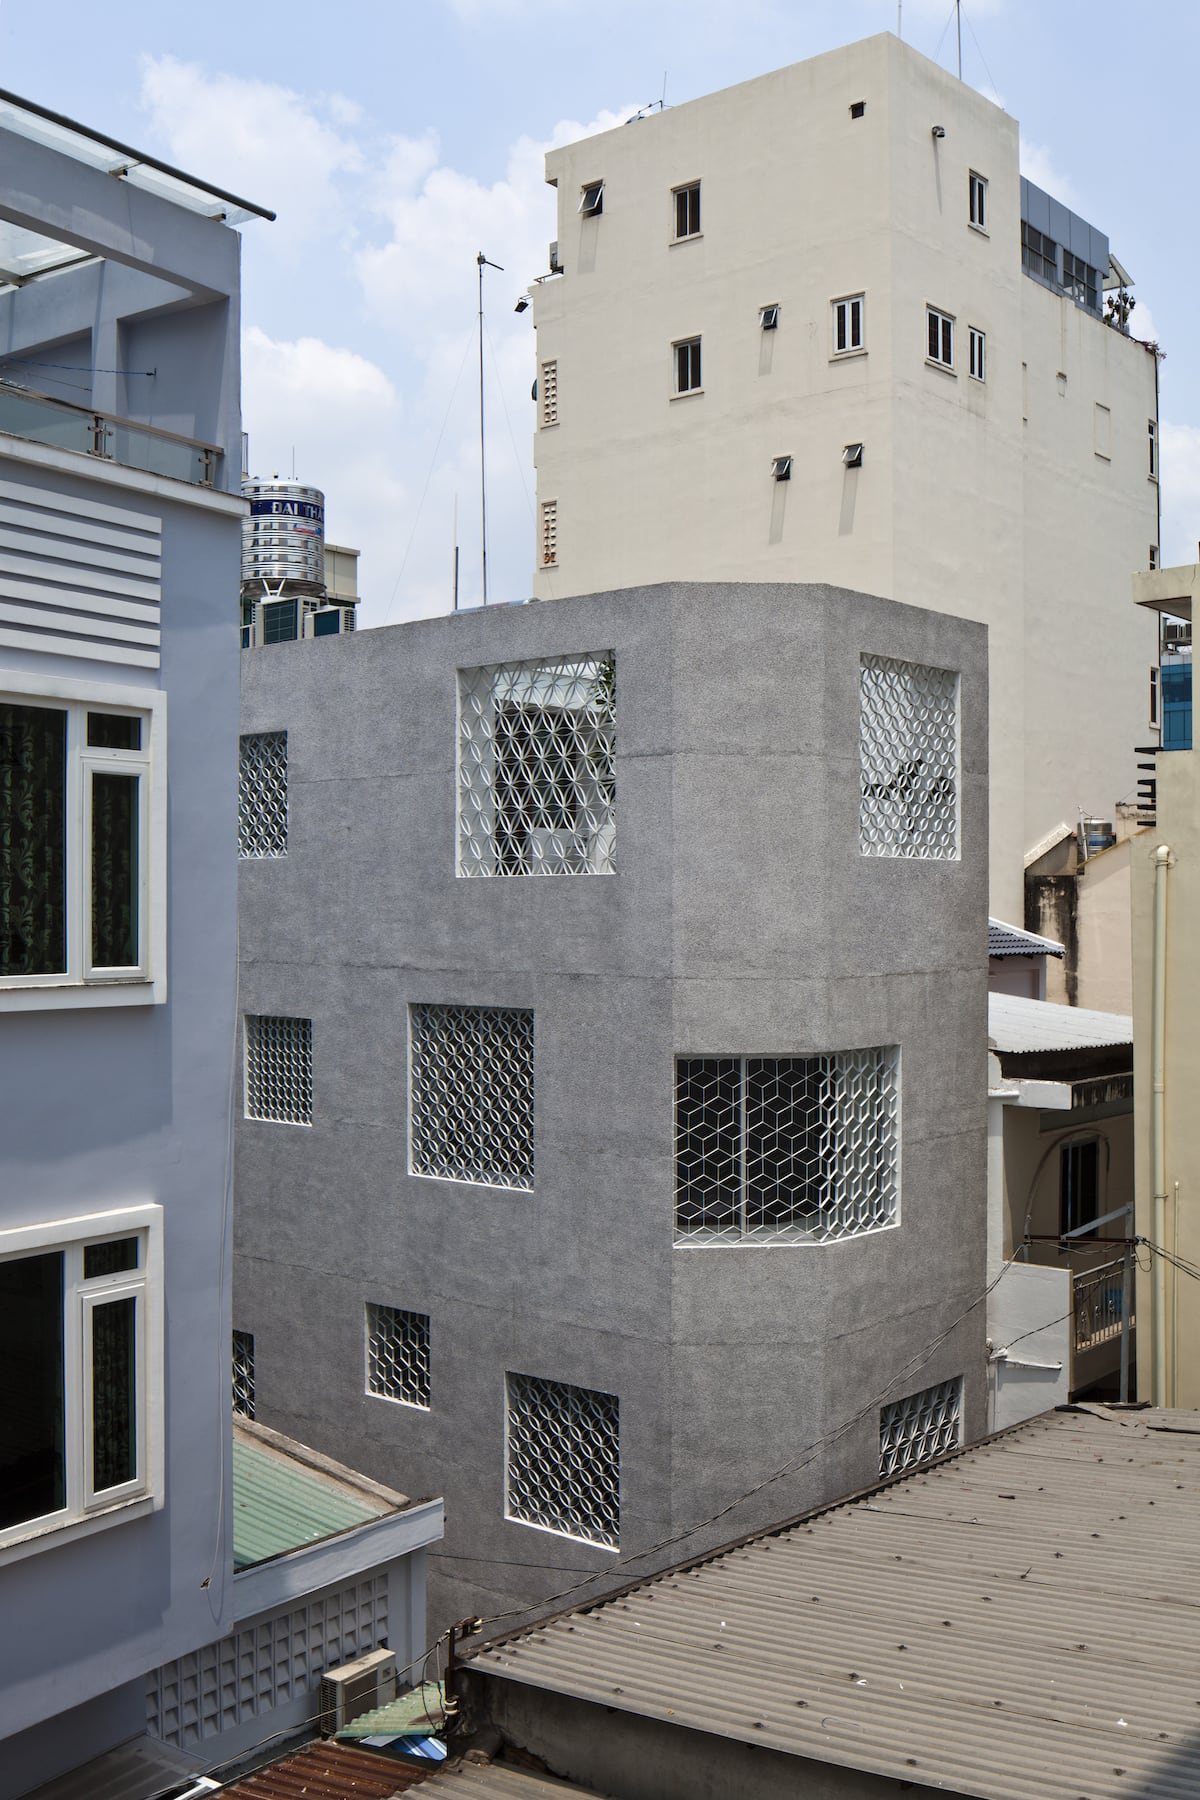 The HEM House, in an alley which constricts space and dulls access to sunlight, uses natural light and wind to create a comfortable living experience. // Design by SDA  Architects // Image courtesy of Hiroyuki Oki